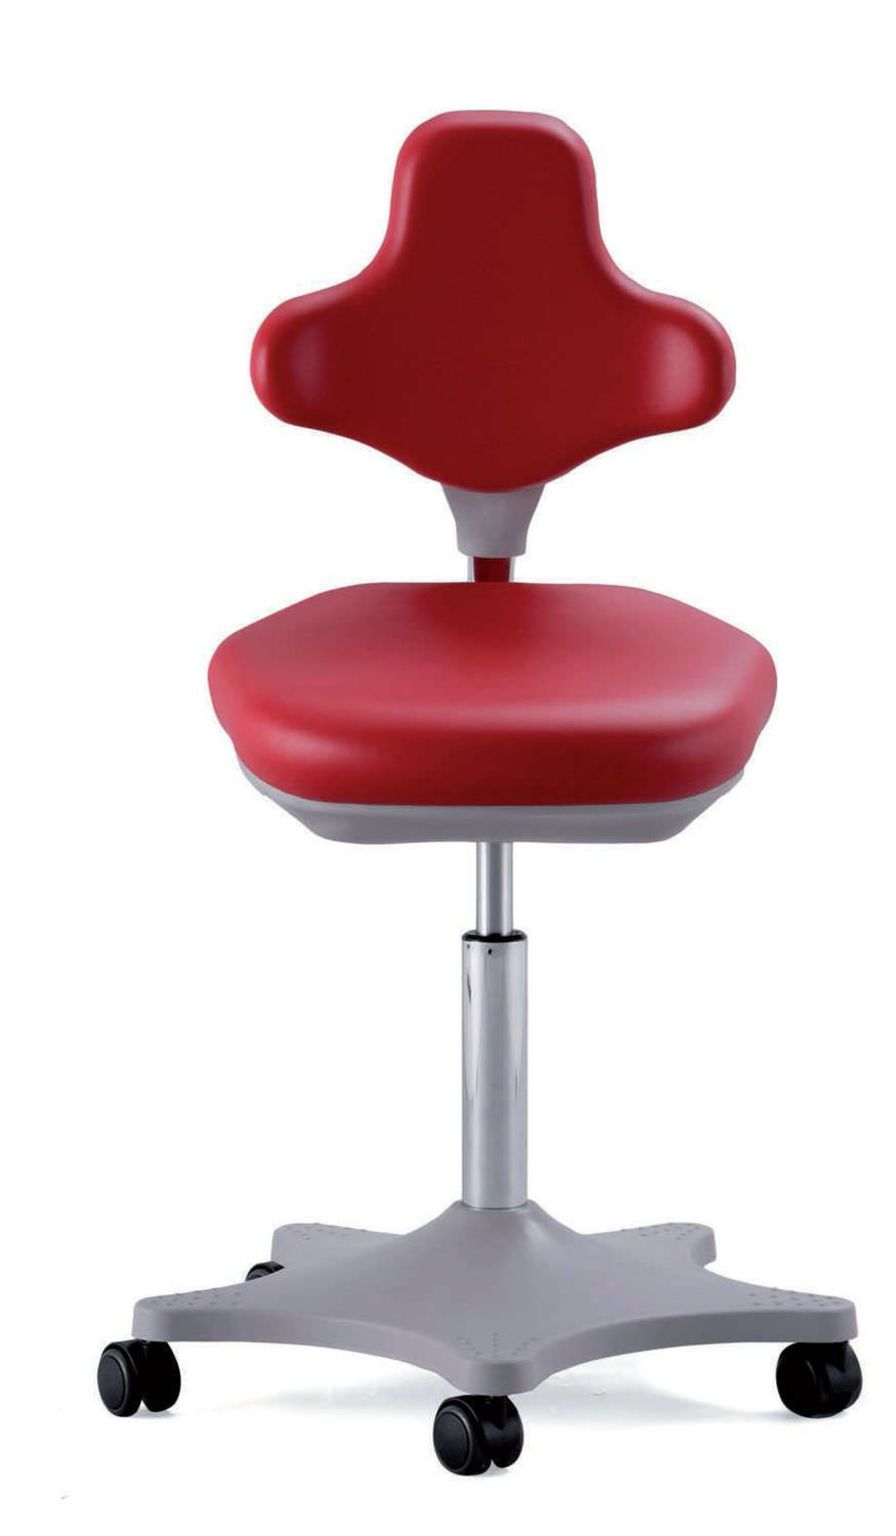 Medical stool / height-adjustable / on casters / with backrest Lab Global Stole